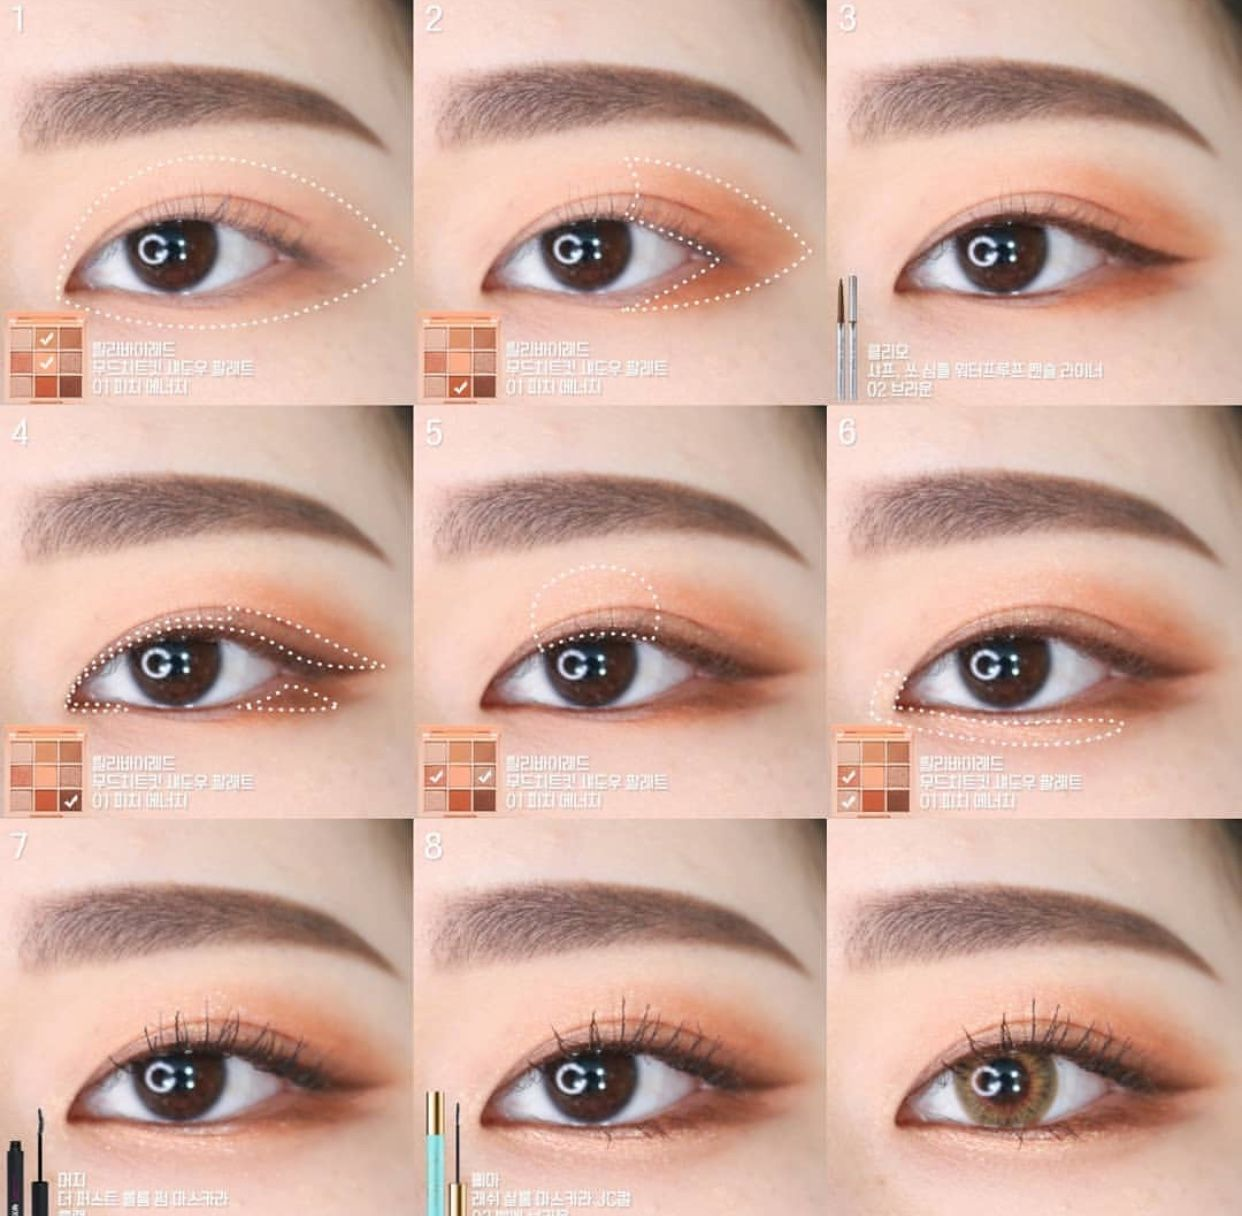 Eye makeup steps 😍 Eyeshadow